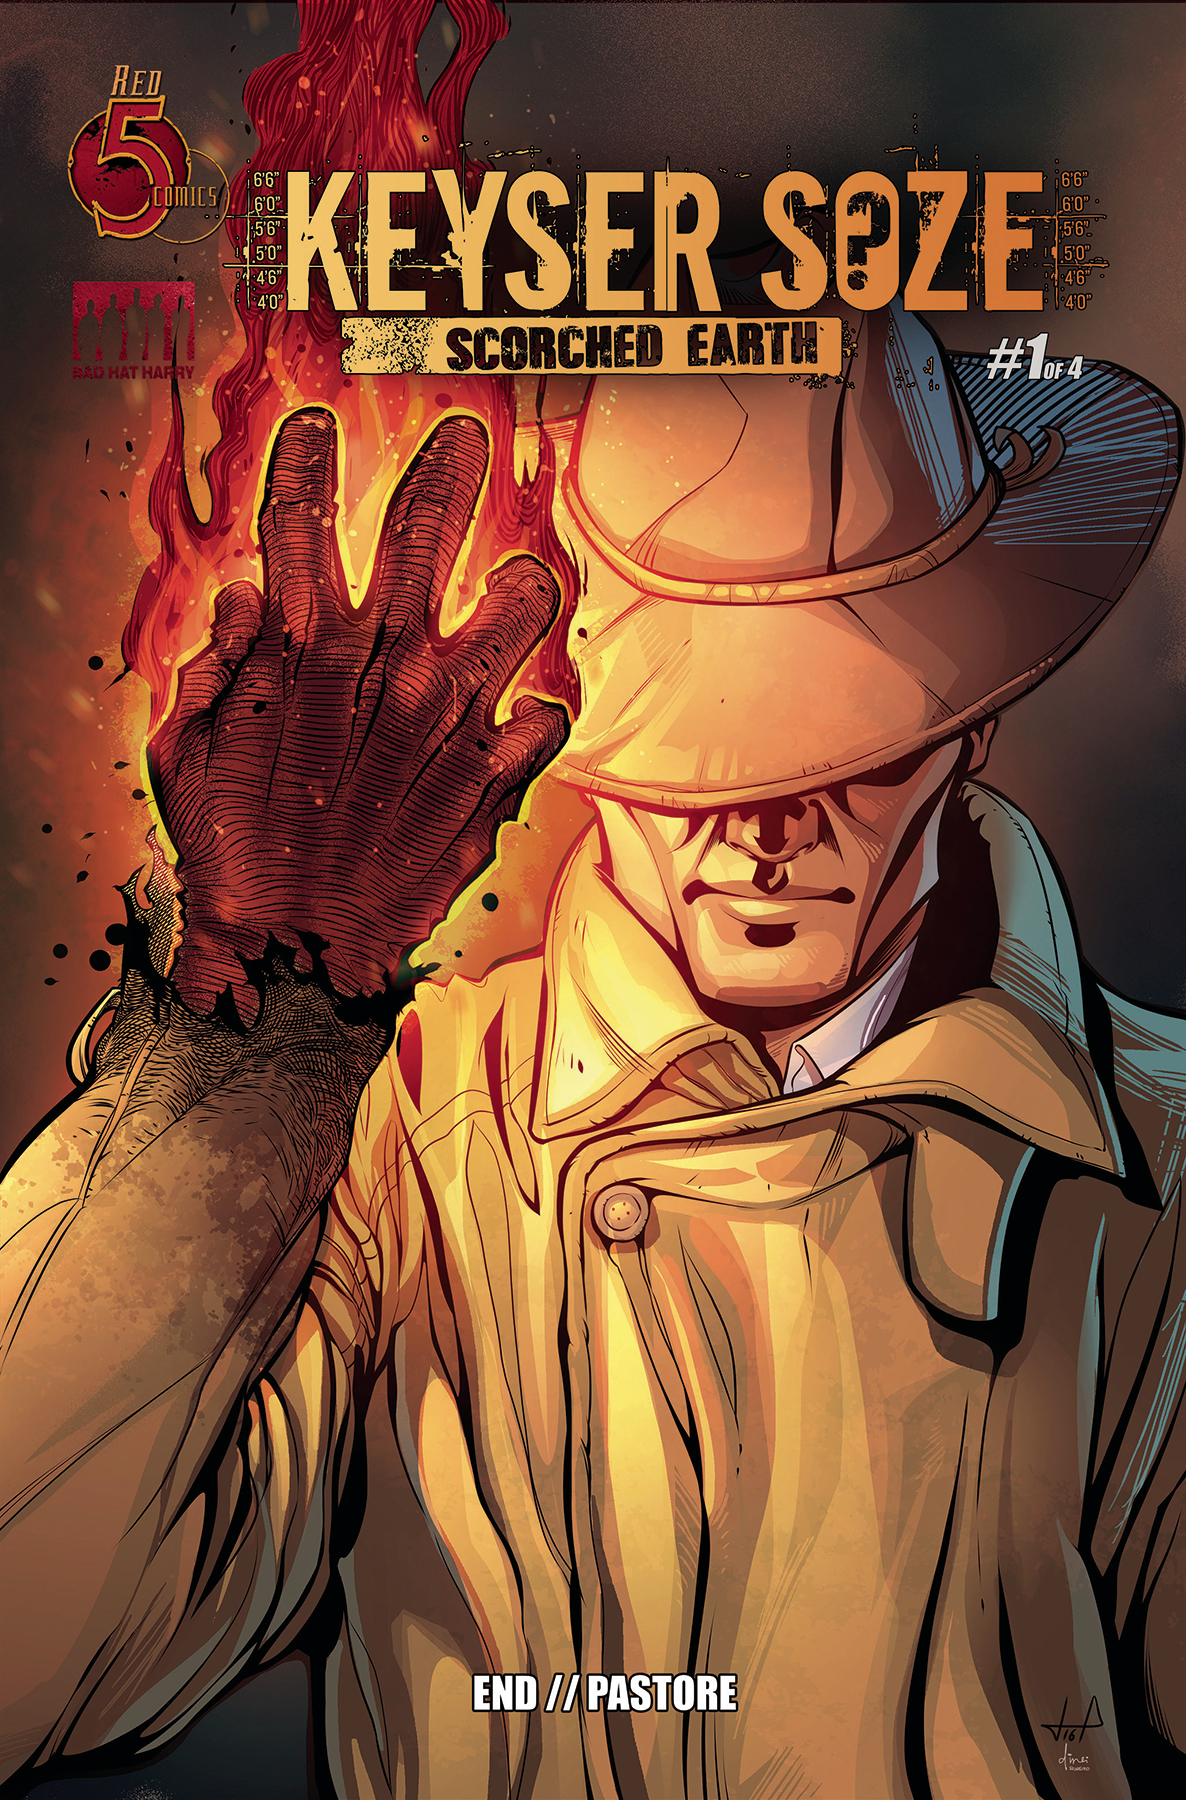 KEYSER SOZE SCORCHED EARTH #1 (OF 5)